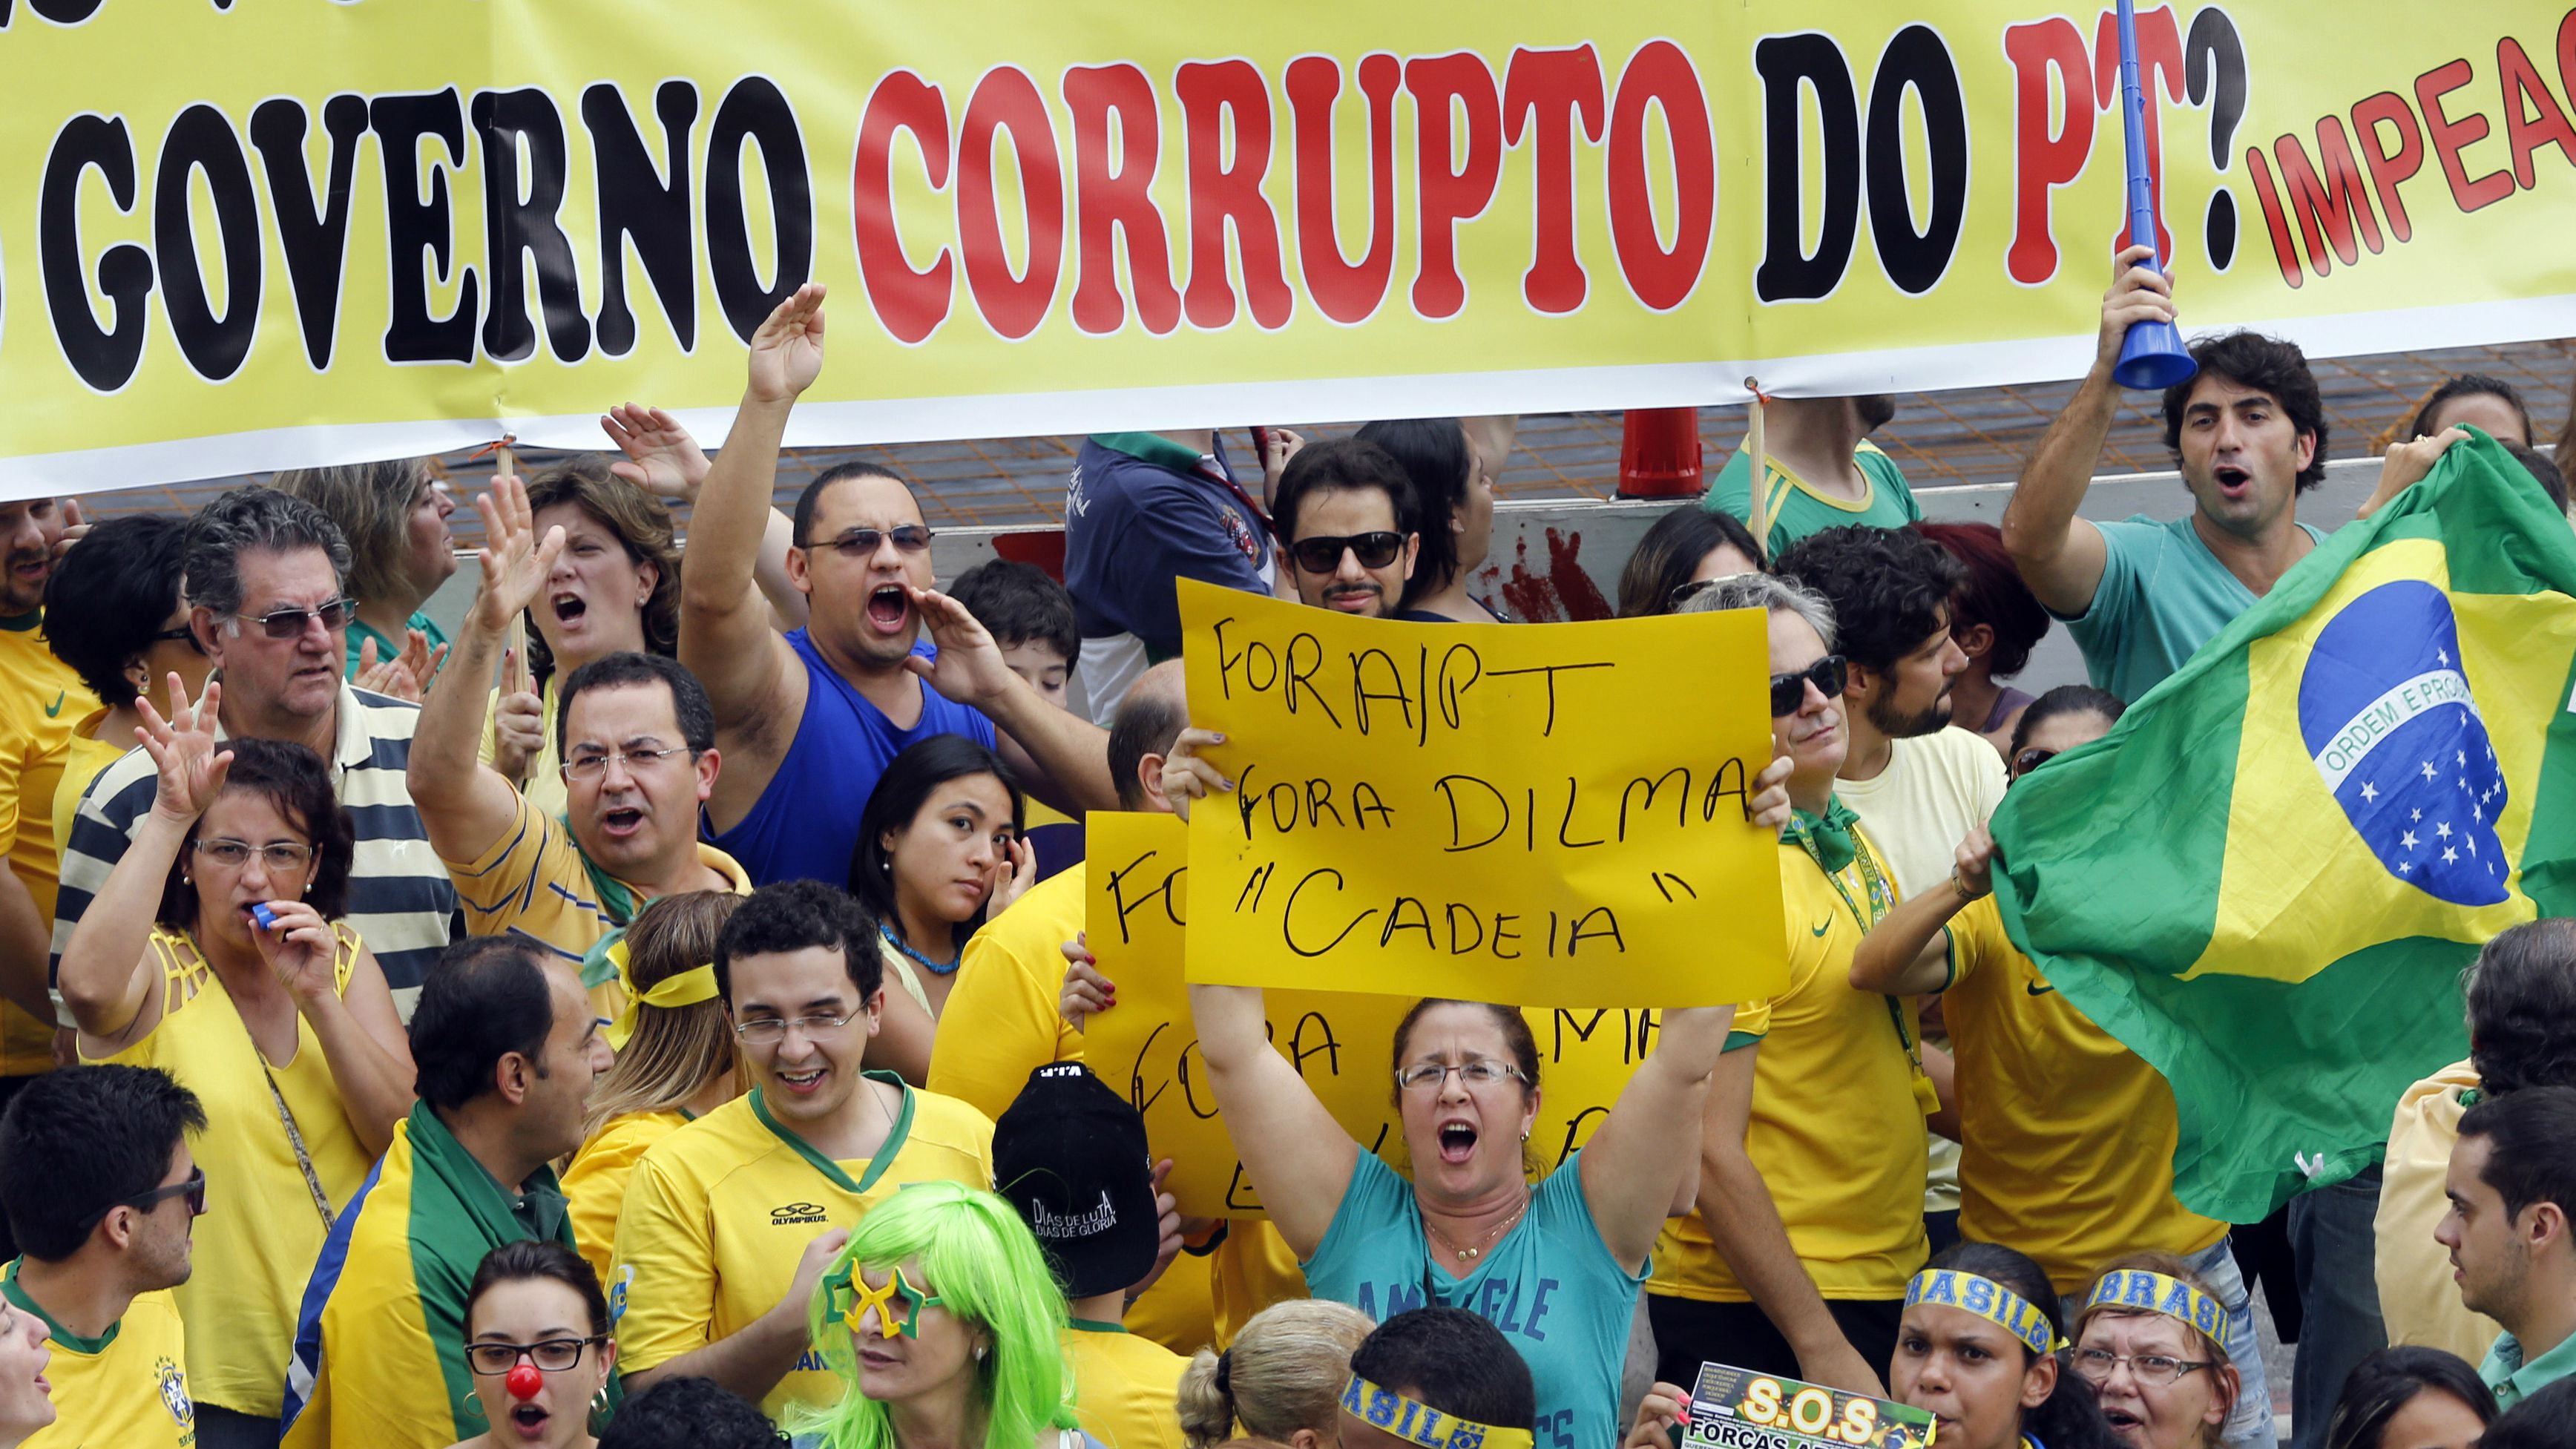 Demonstrators chant slogans during a protest against Brazil's President Dilma Rousseff at Paulista avenue in Sao Paulo March 15, 2015. Protest organizers in dozens of cities across Brazil are planning marches to pressure Rousseff over unpopular budget cuts and a corruption scandal that has snared leaders of her political coalition.